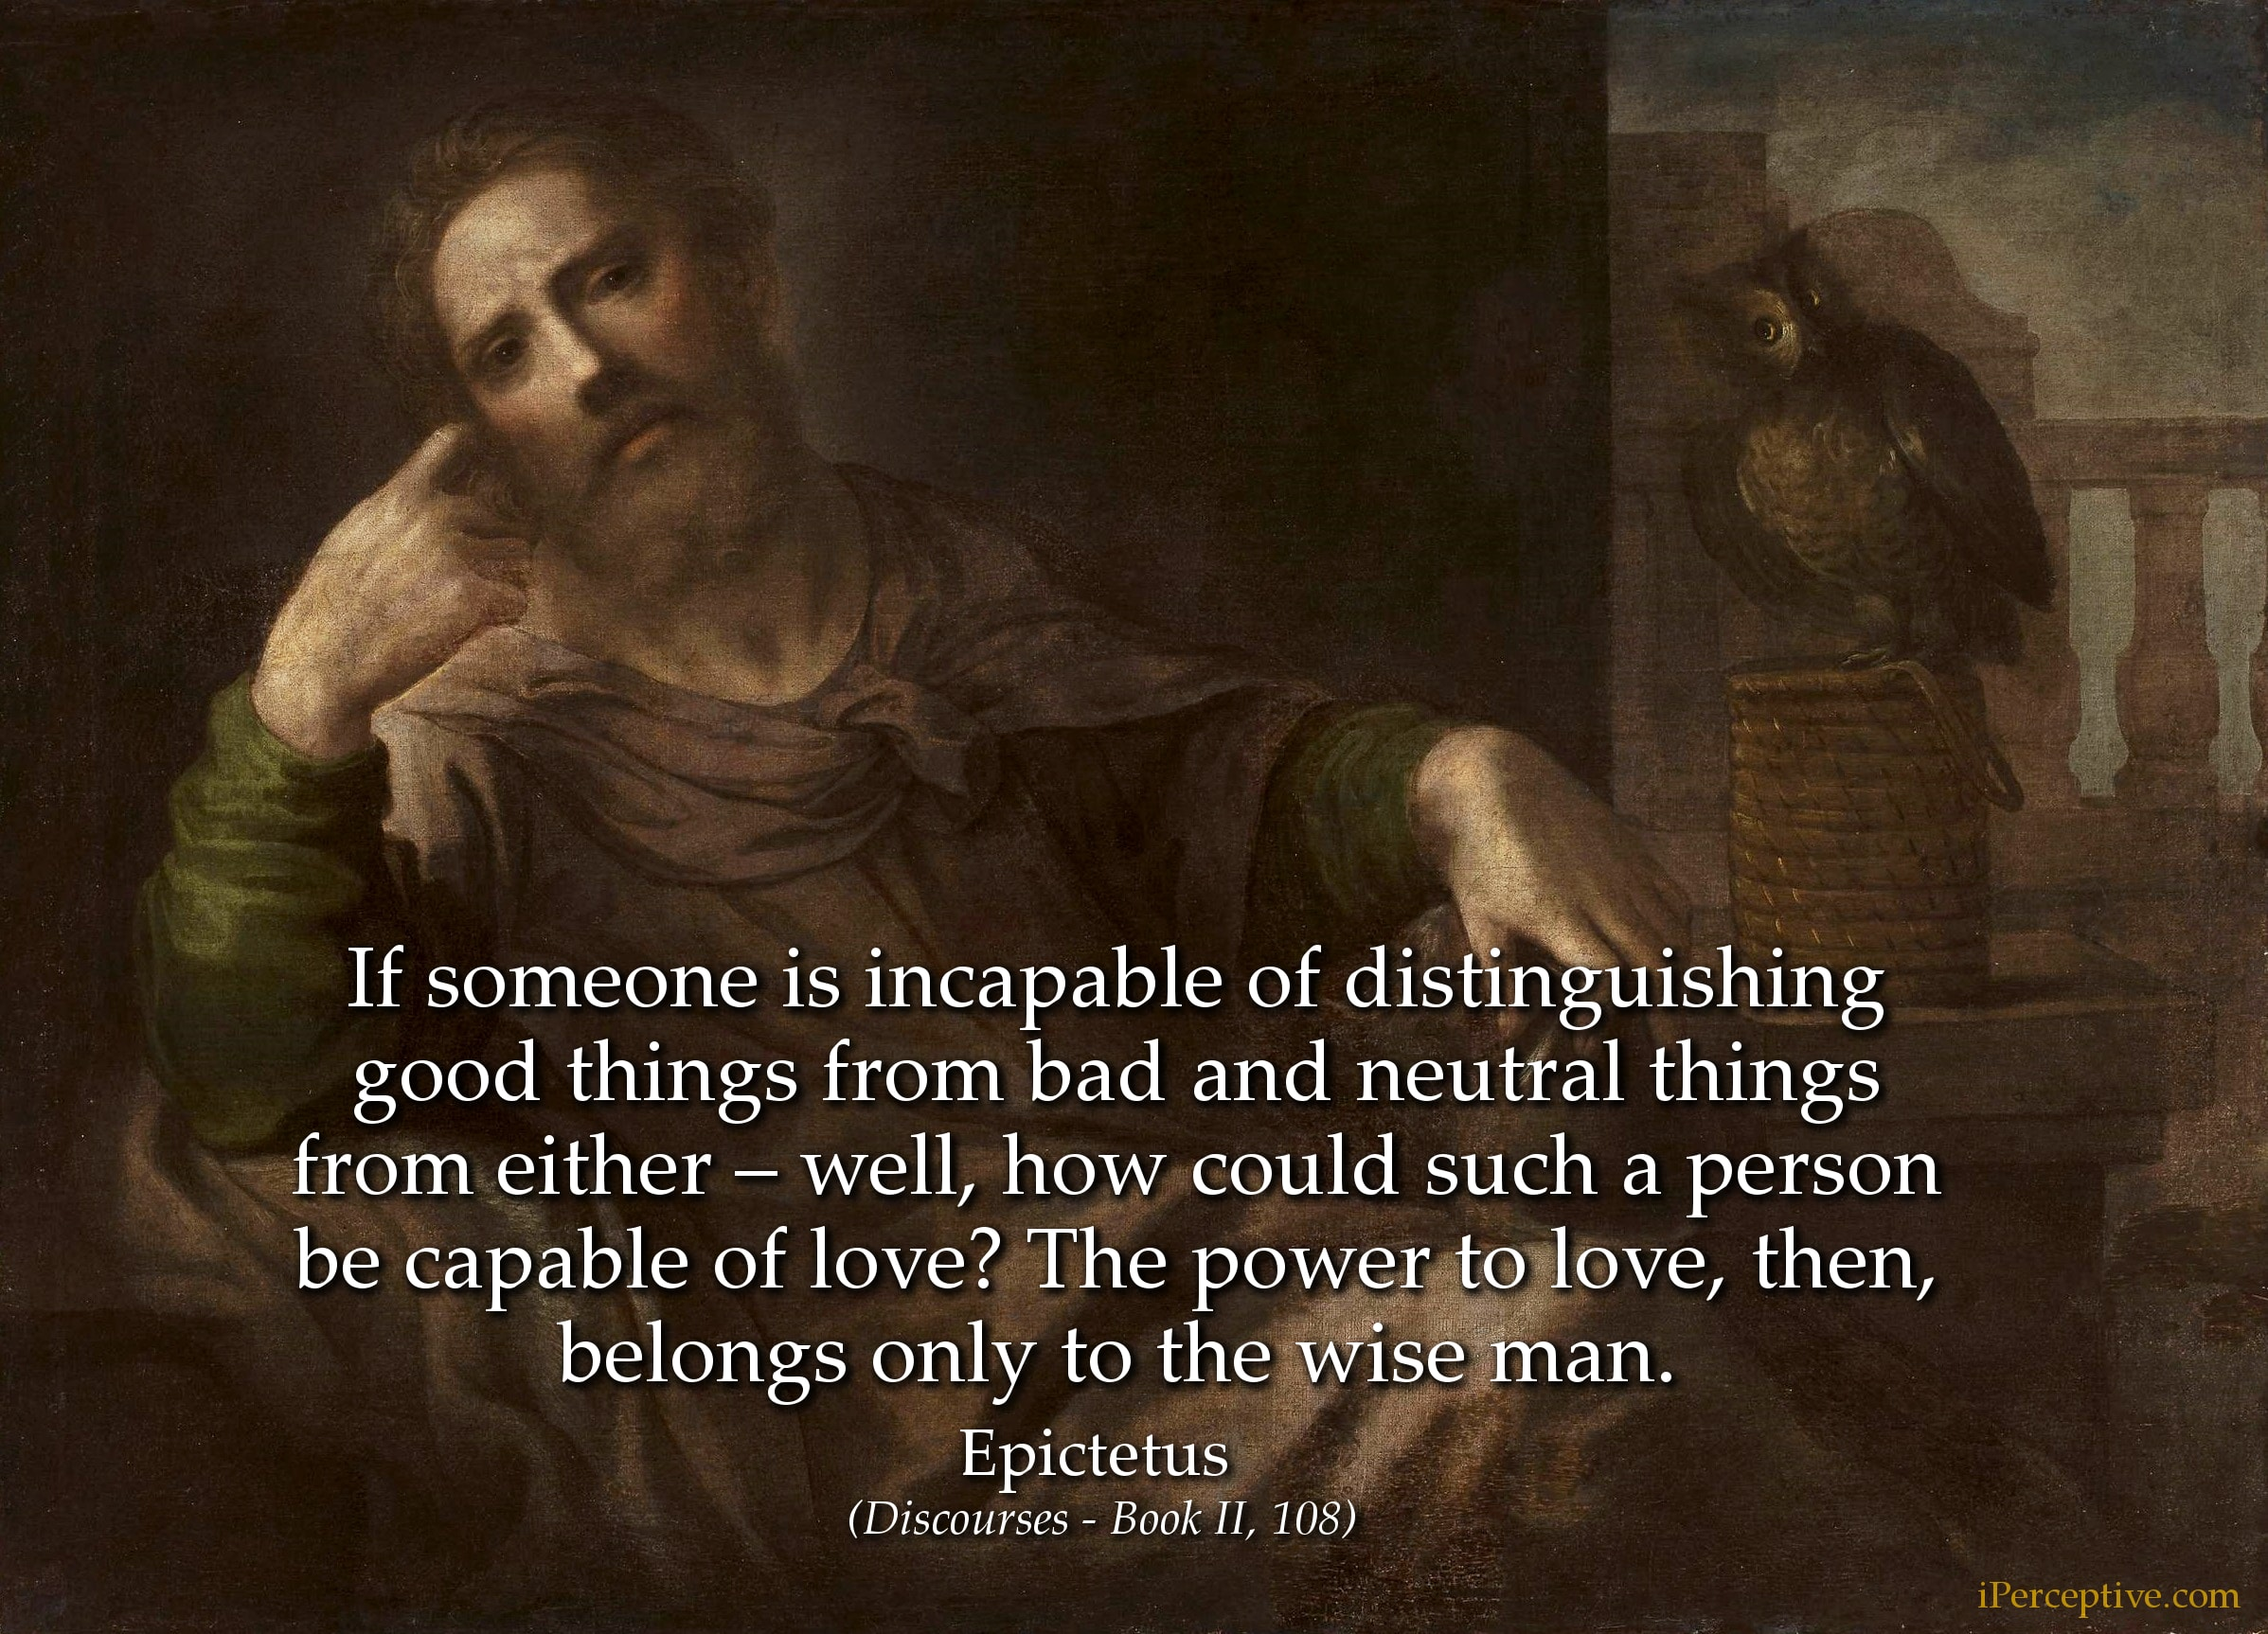 Epictetus Stoic Quote on Love: If someone is incapable of distinguishing good things from...